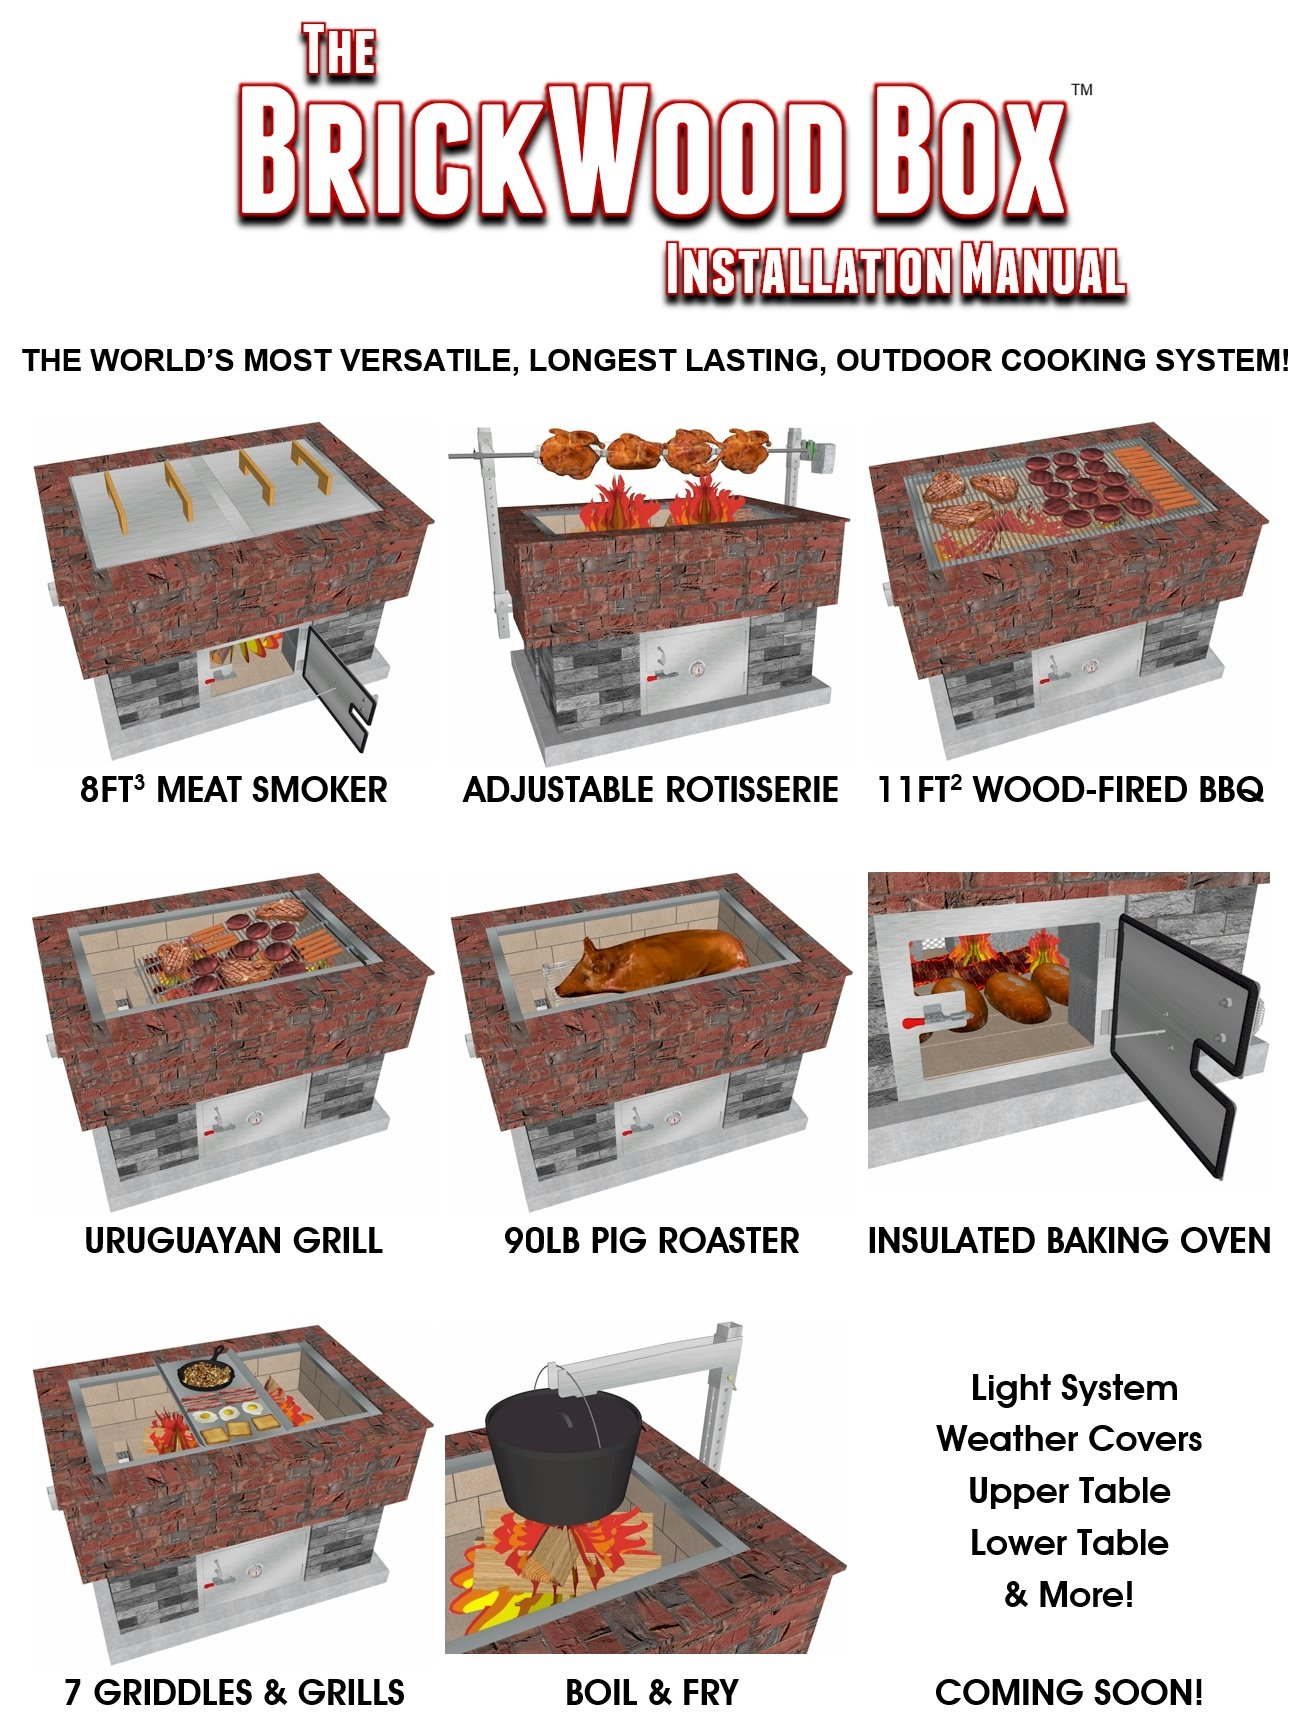 Commercial-Duty Stainless Steel Caja Style Pig Roaster Package for the BrickWood Box Outdoor Cooking System